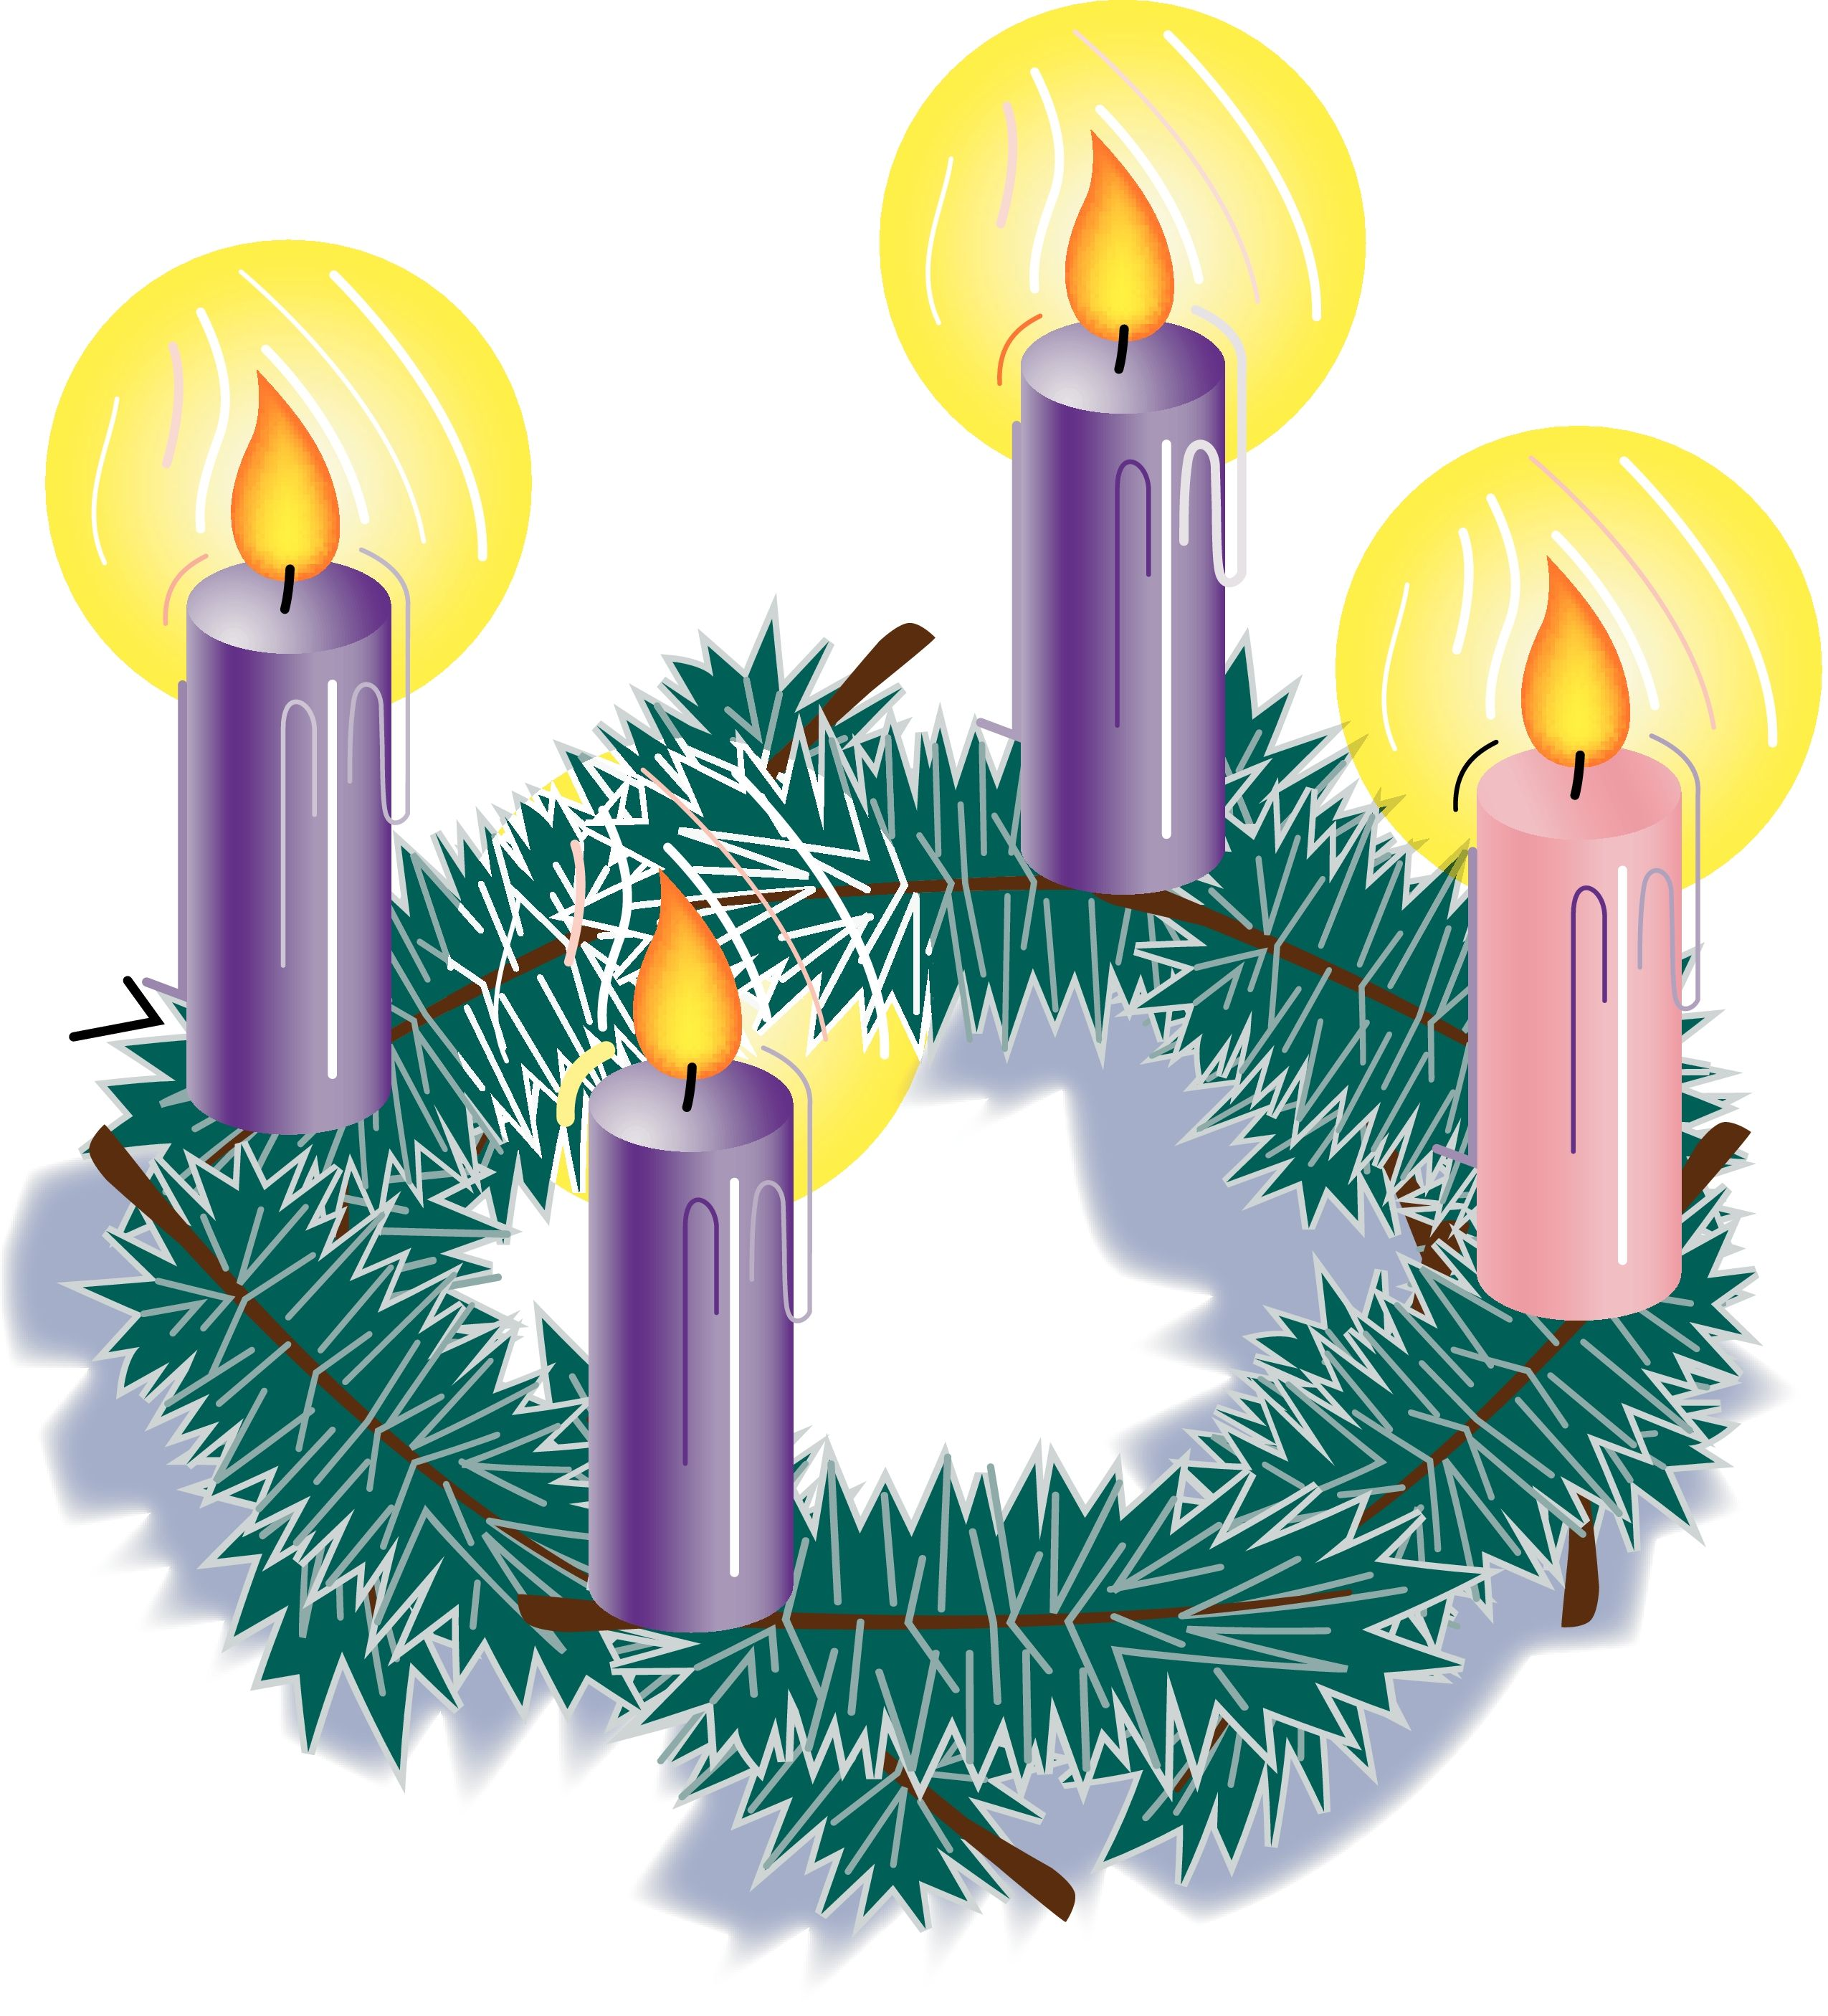 Advent transparent. Clipart mass free for